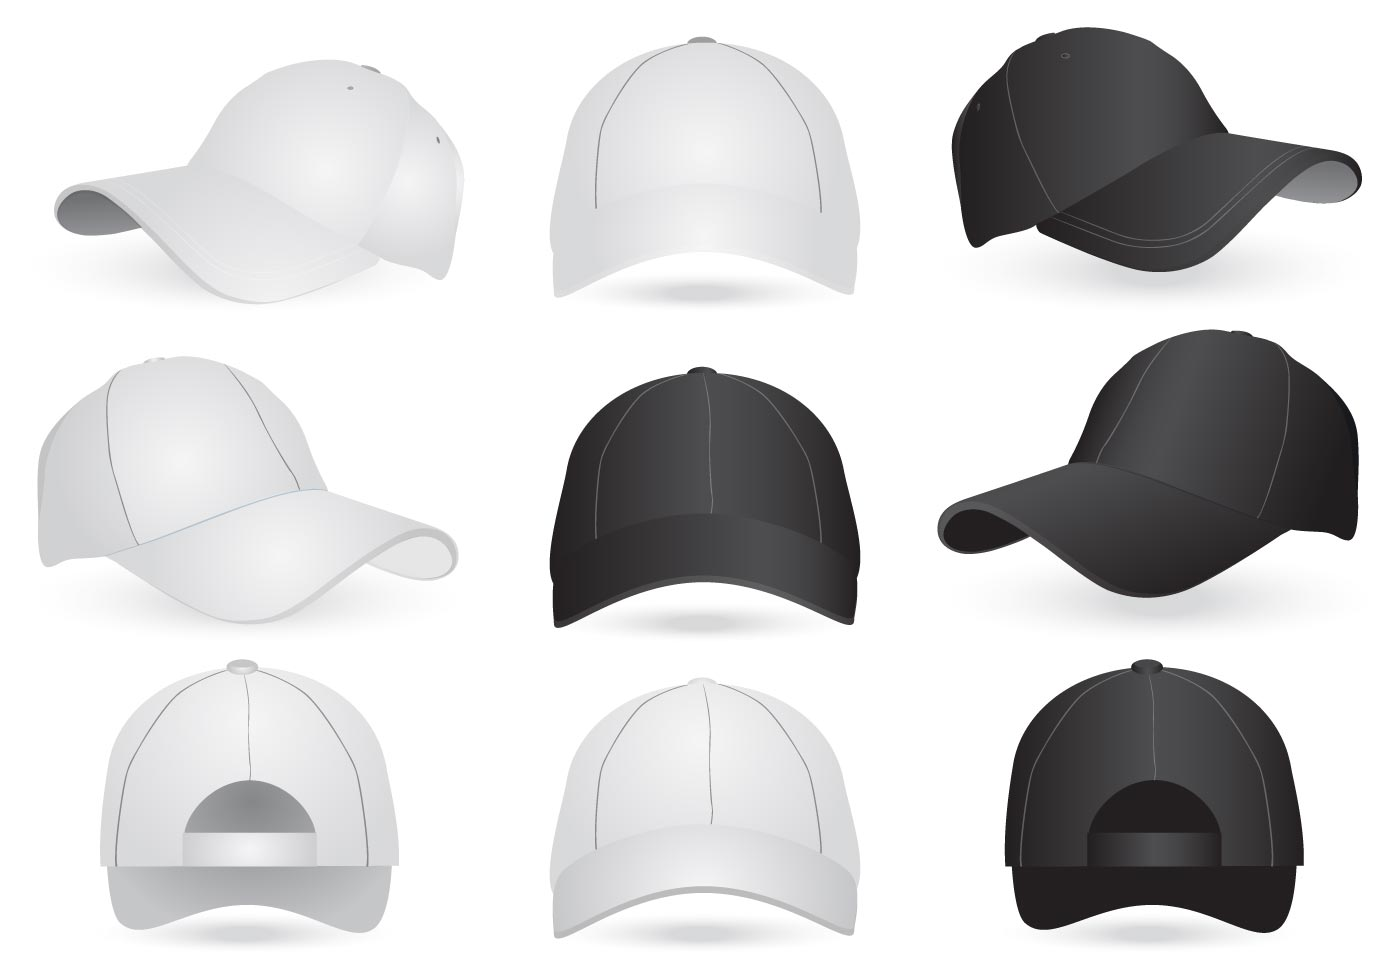 vector mockup templates of cap and hat download free Person with Question Mark Clip Art Question Mark Border Clip Art